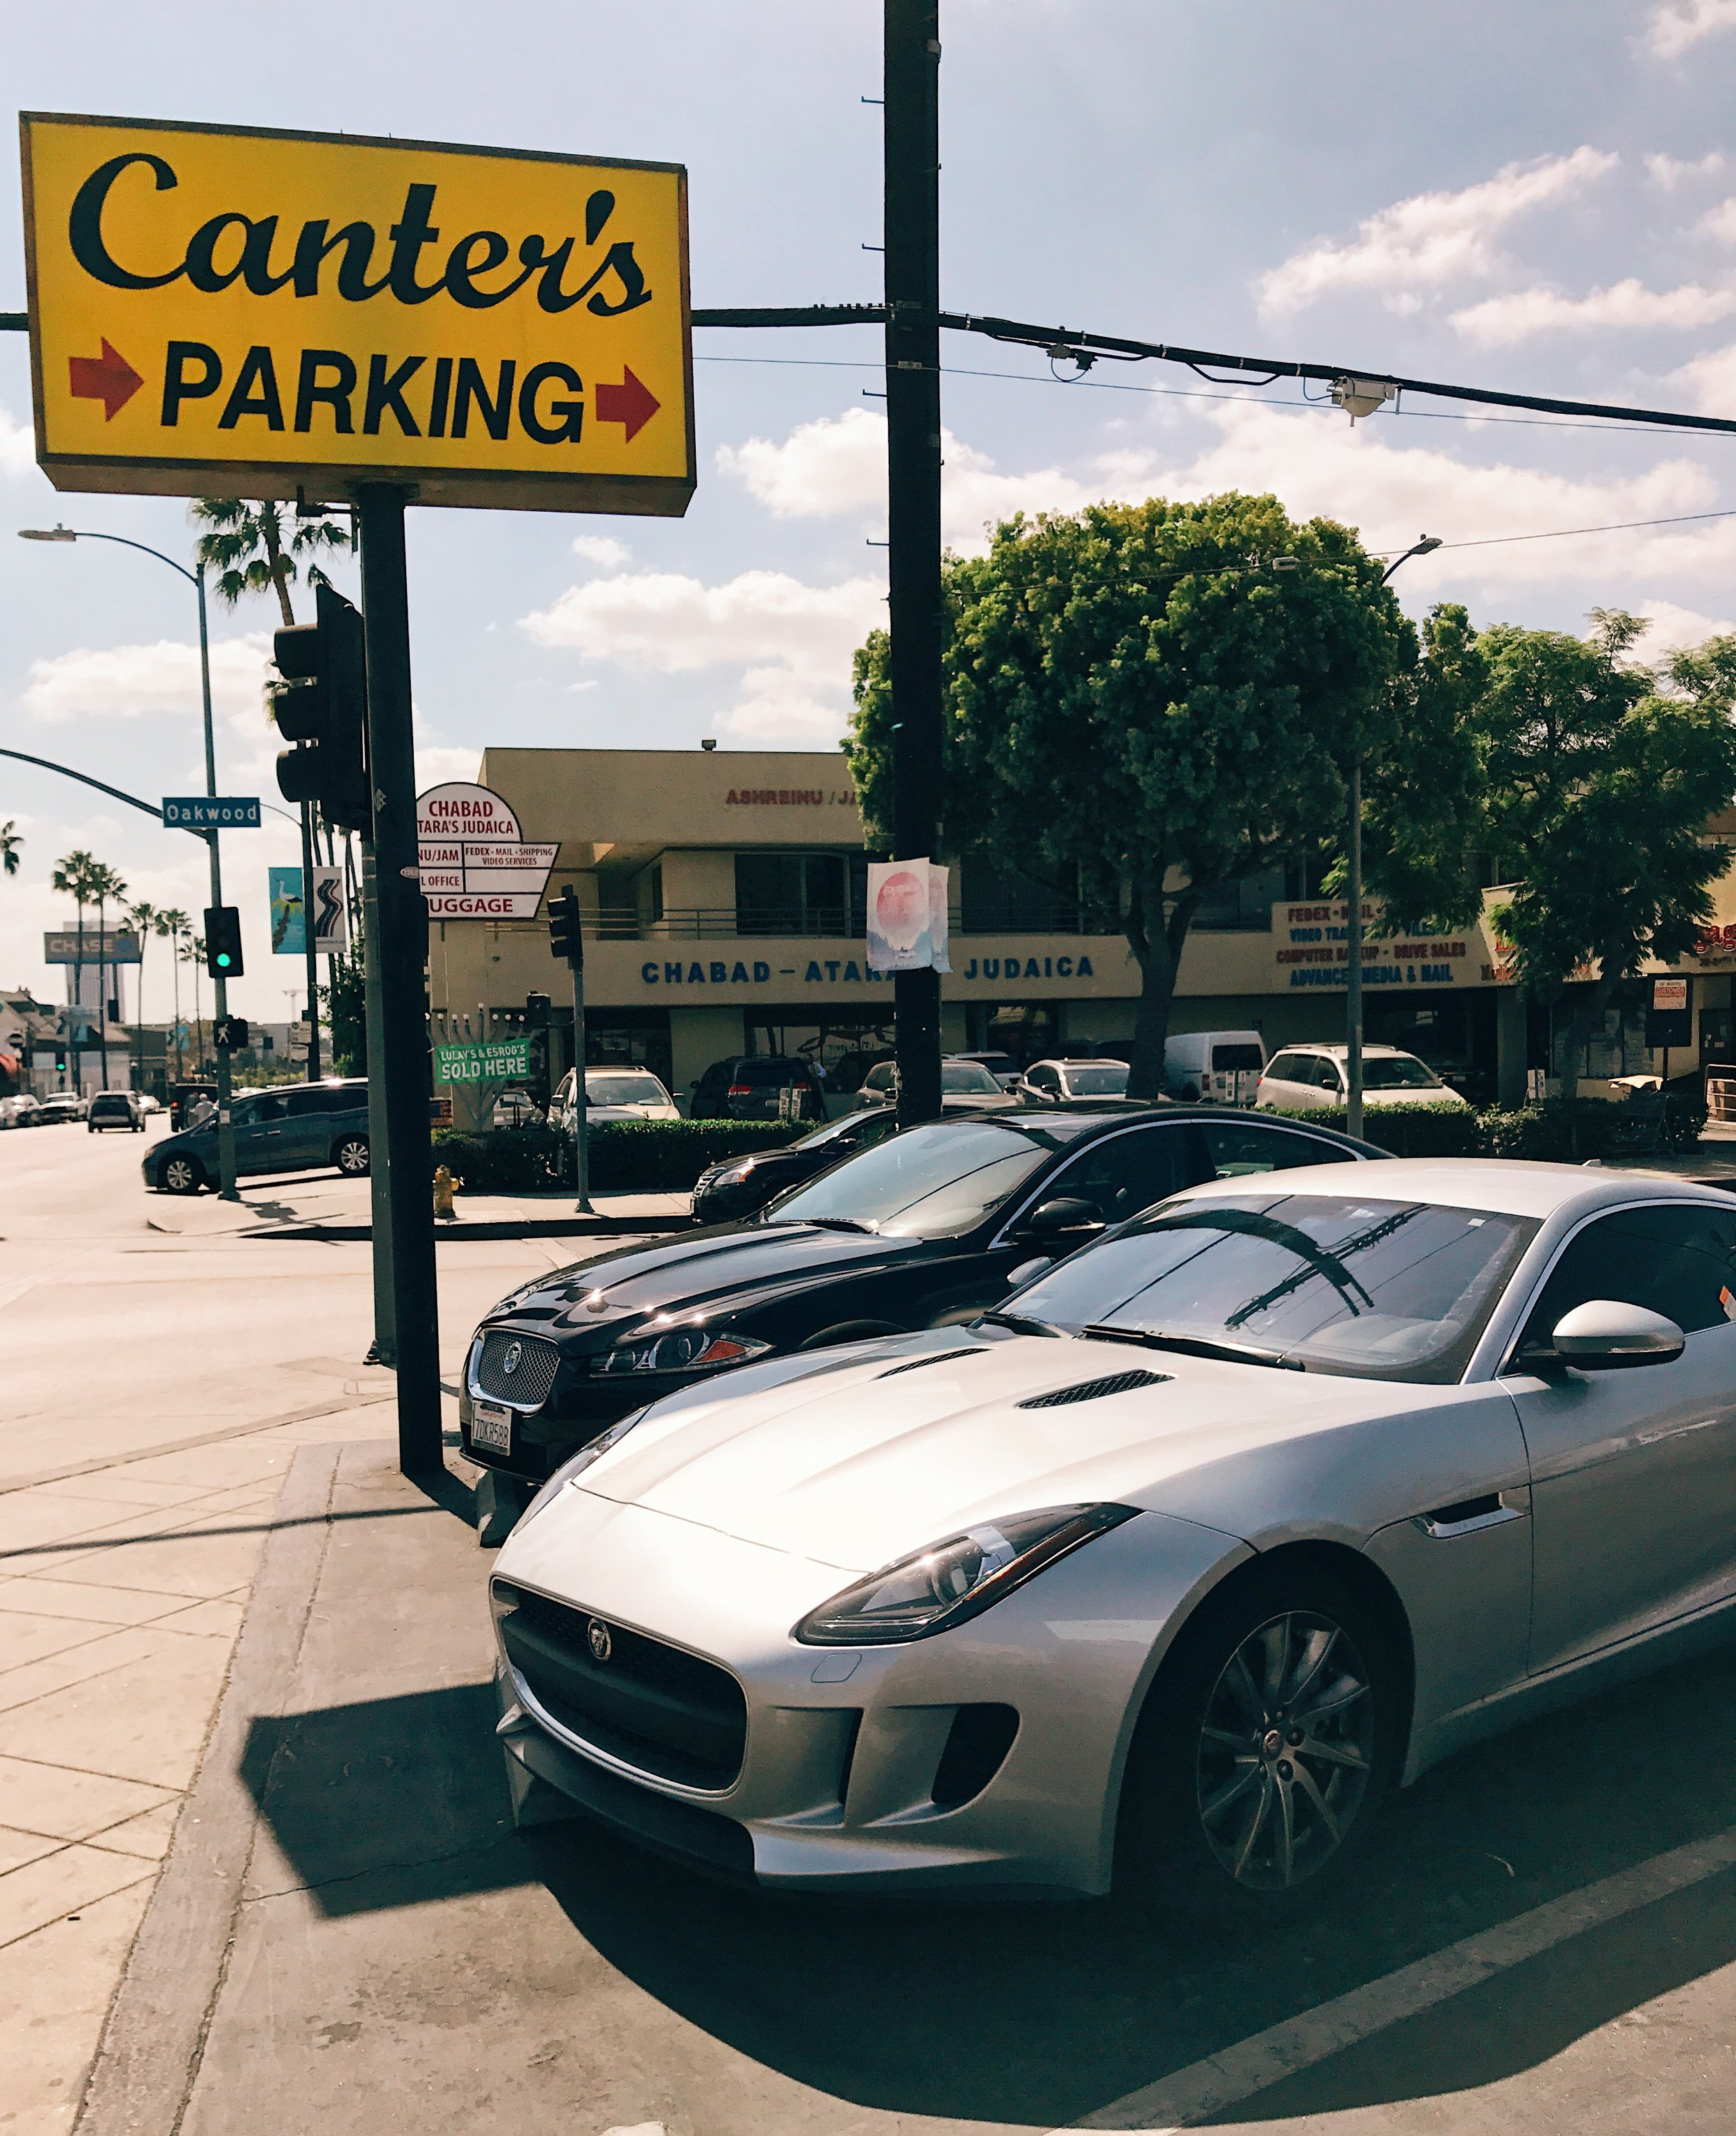 Blending in flawlessly on Fairfax, and look what parked next to me!